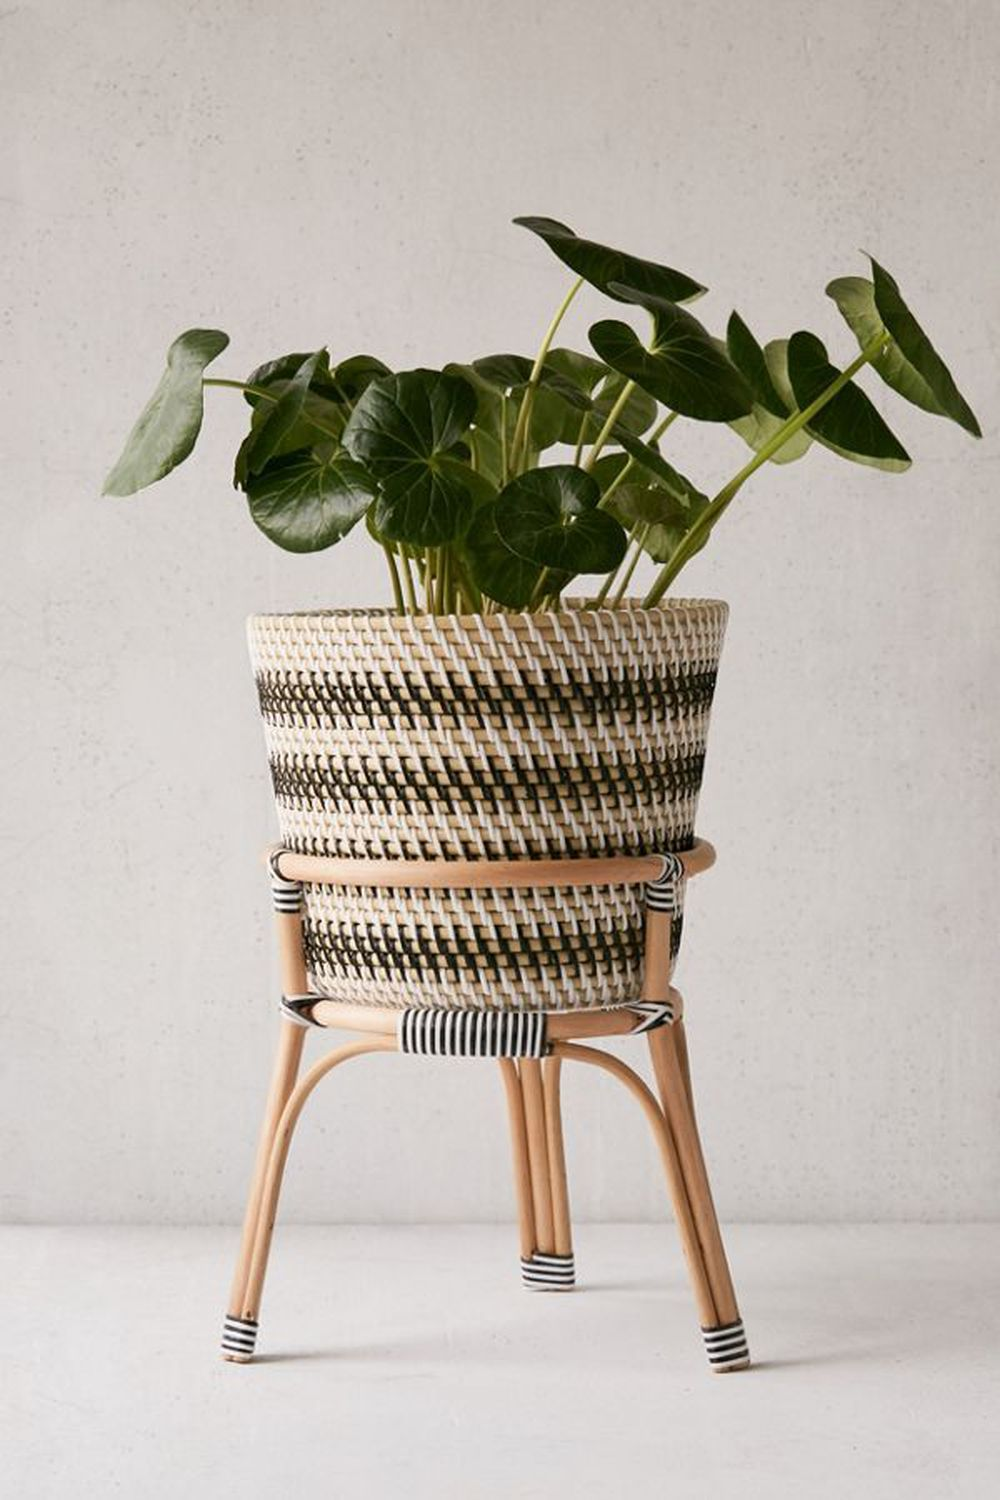 15 irresistible planters for your greenery